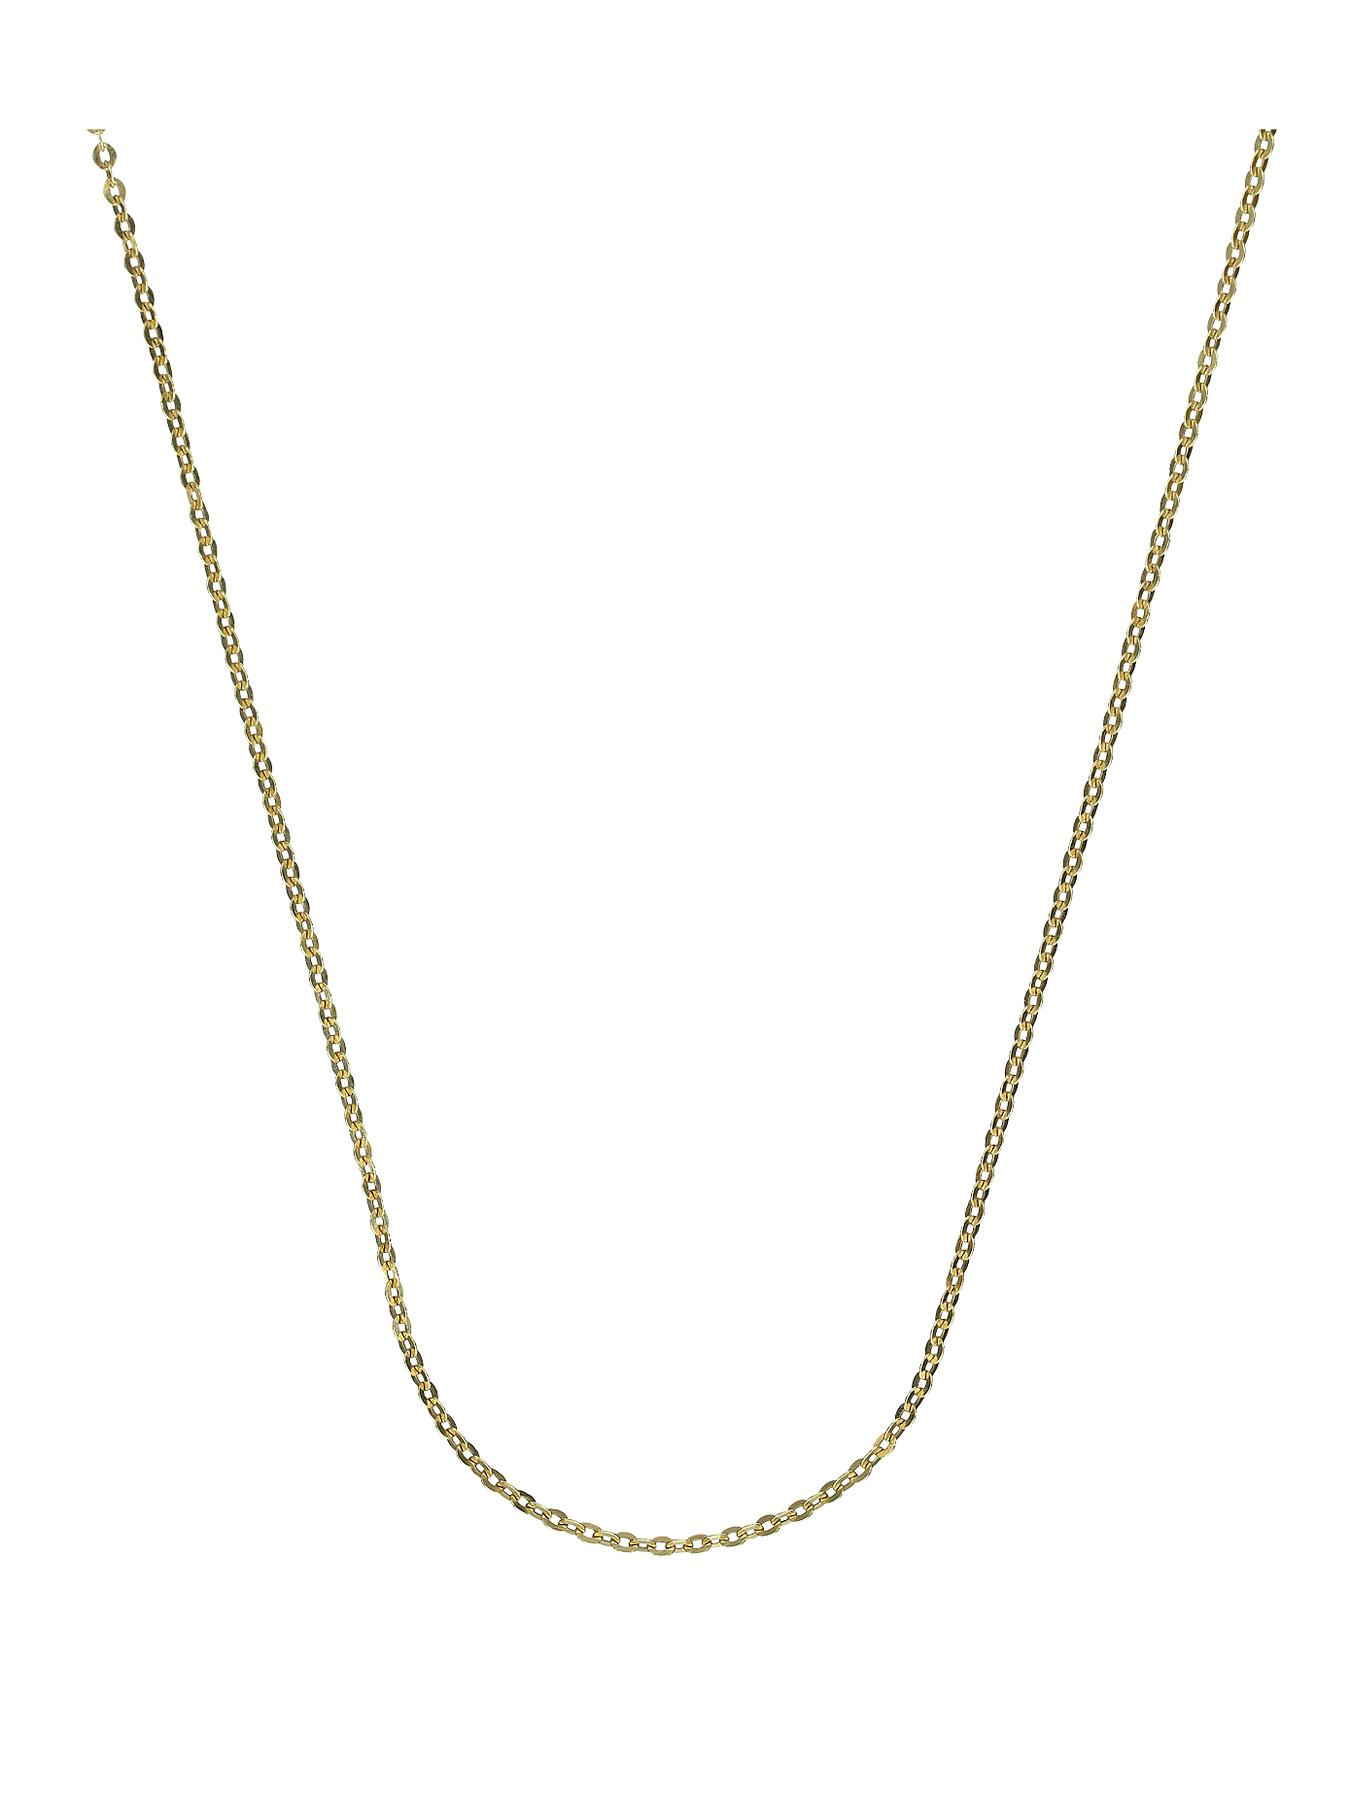 Sterling Silver and 9 Carat Yellow Gold Bonded Chain 18 inch